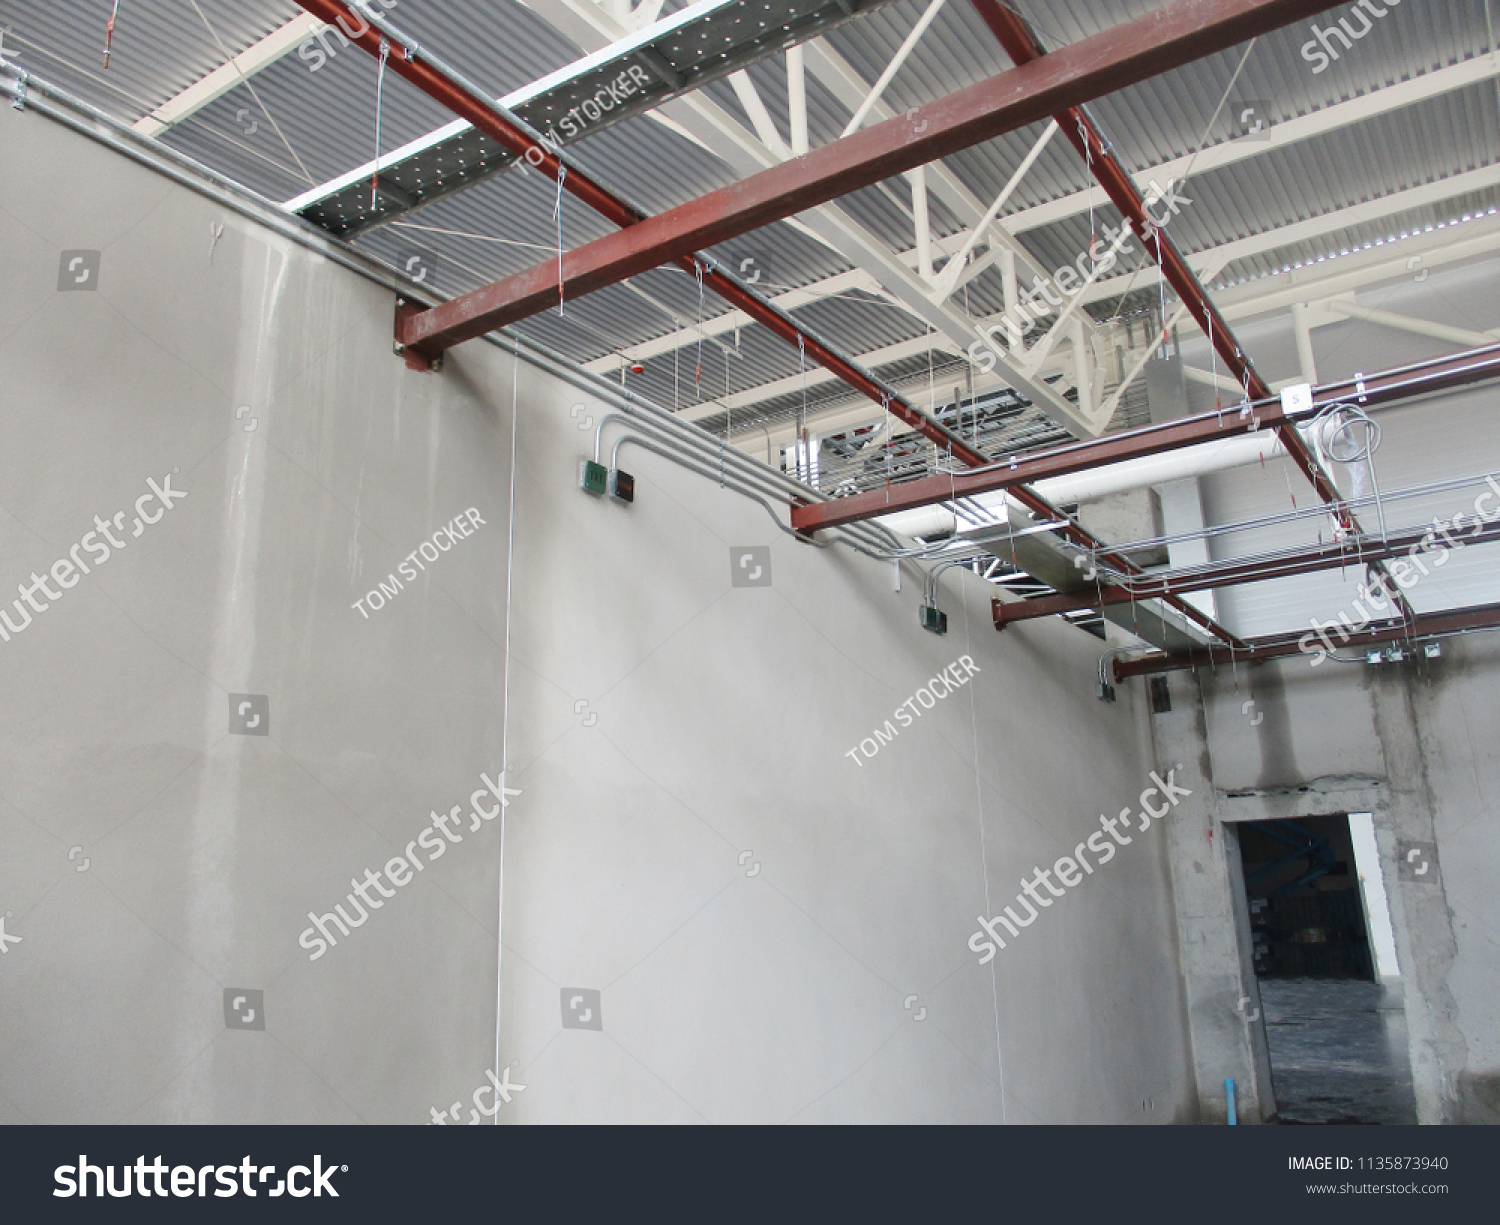 Installation Round Box Imt Conduit Support Stock Photo Edit Now